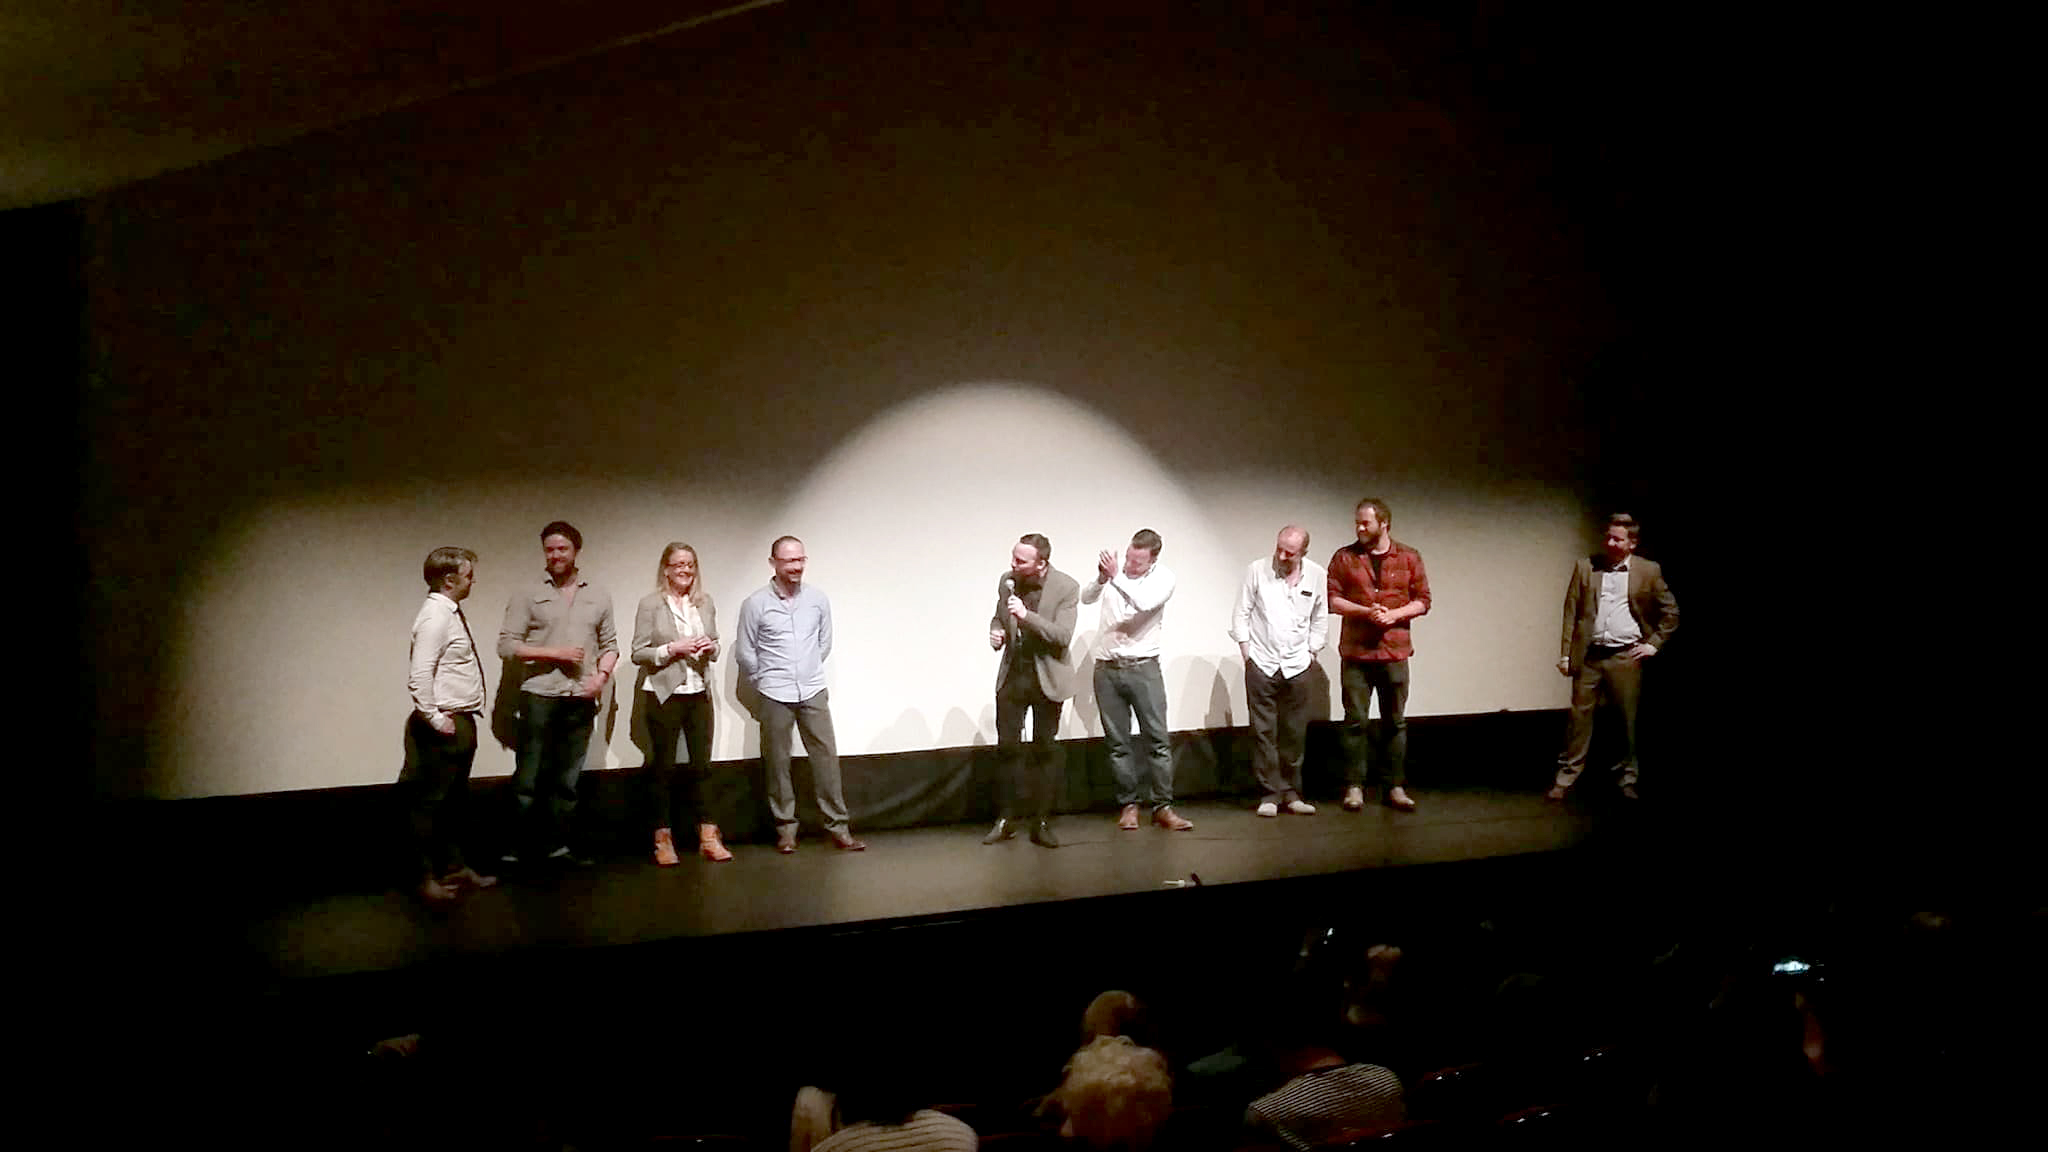 Q&A session after Galway screening